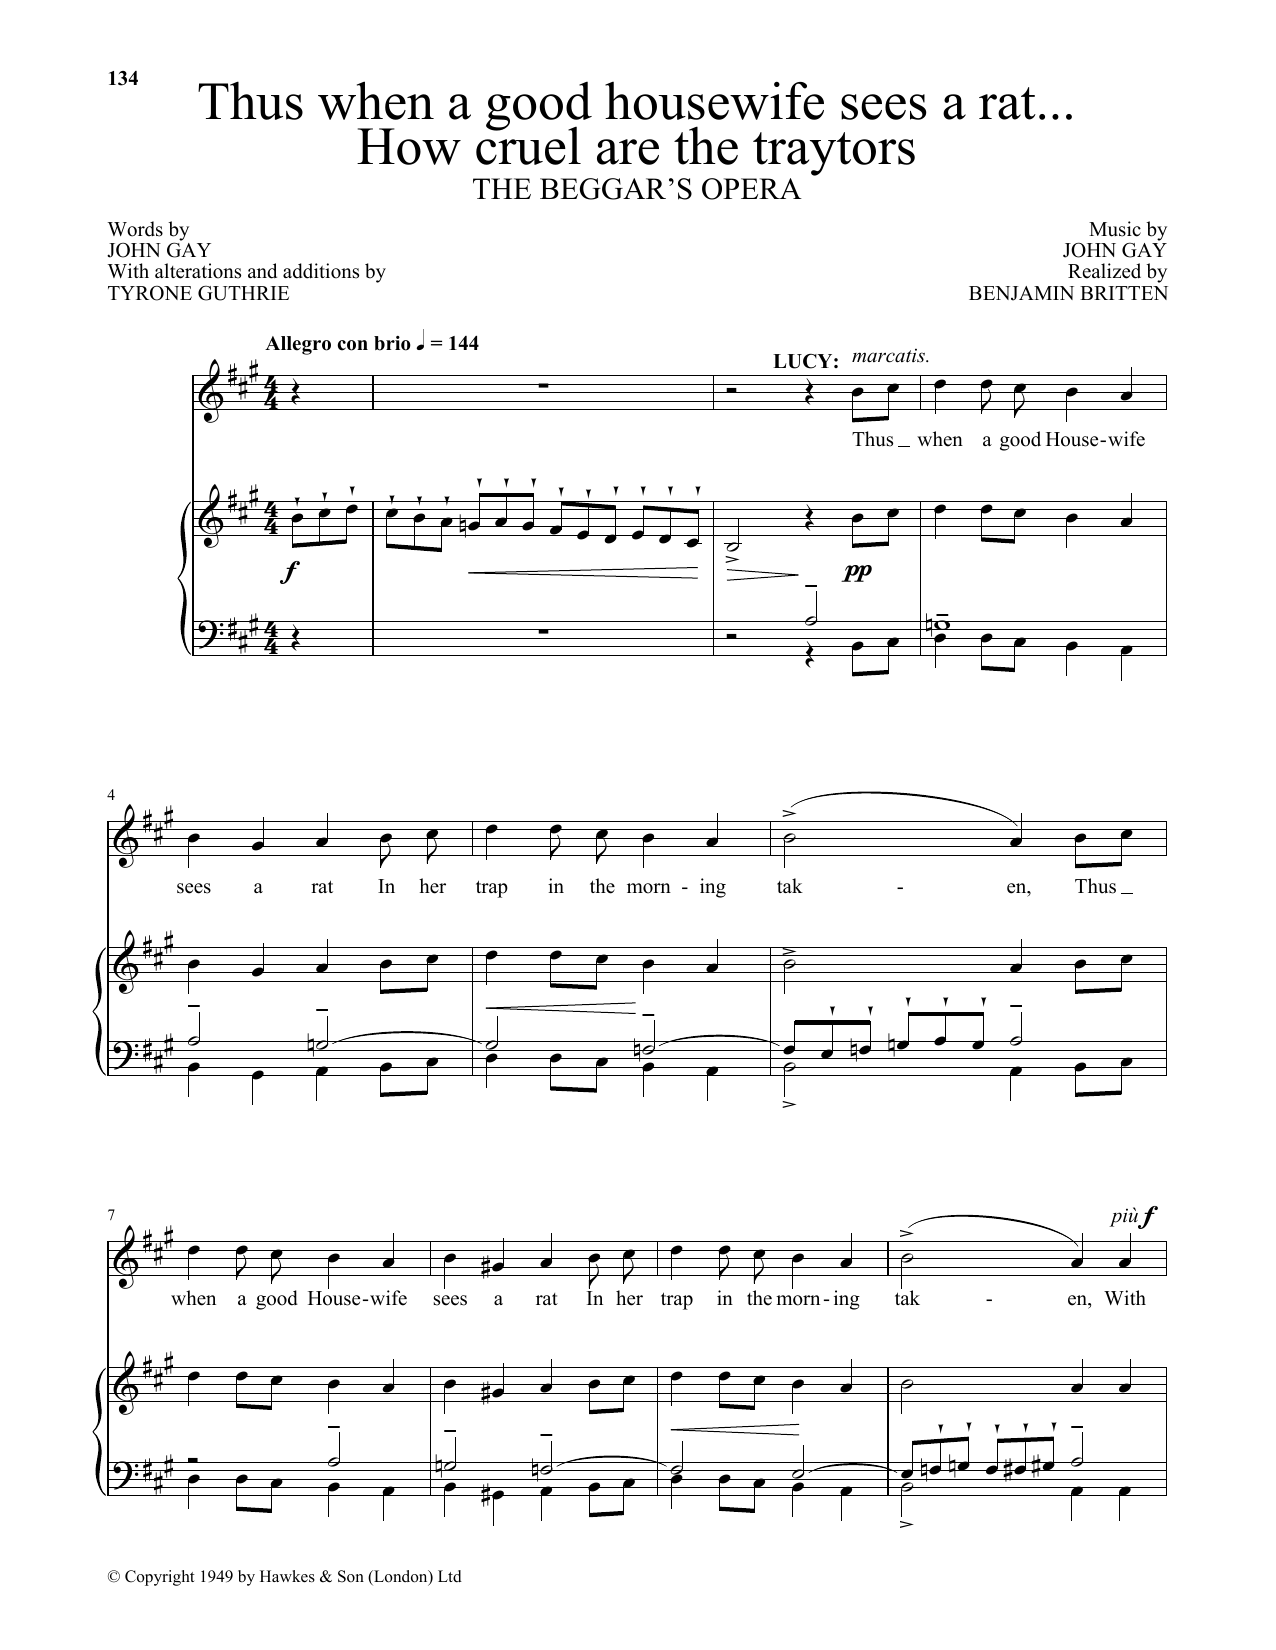 Thus when A good housewife sees a rat...How cruel are the traytors (from The Beggar's Opera) (Piano & Vocal)